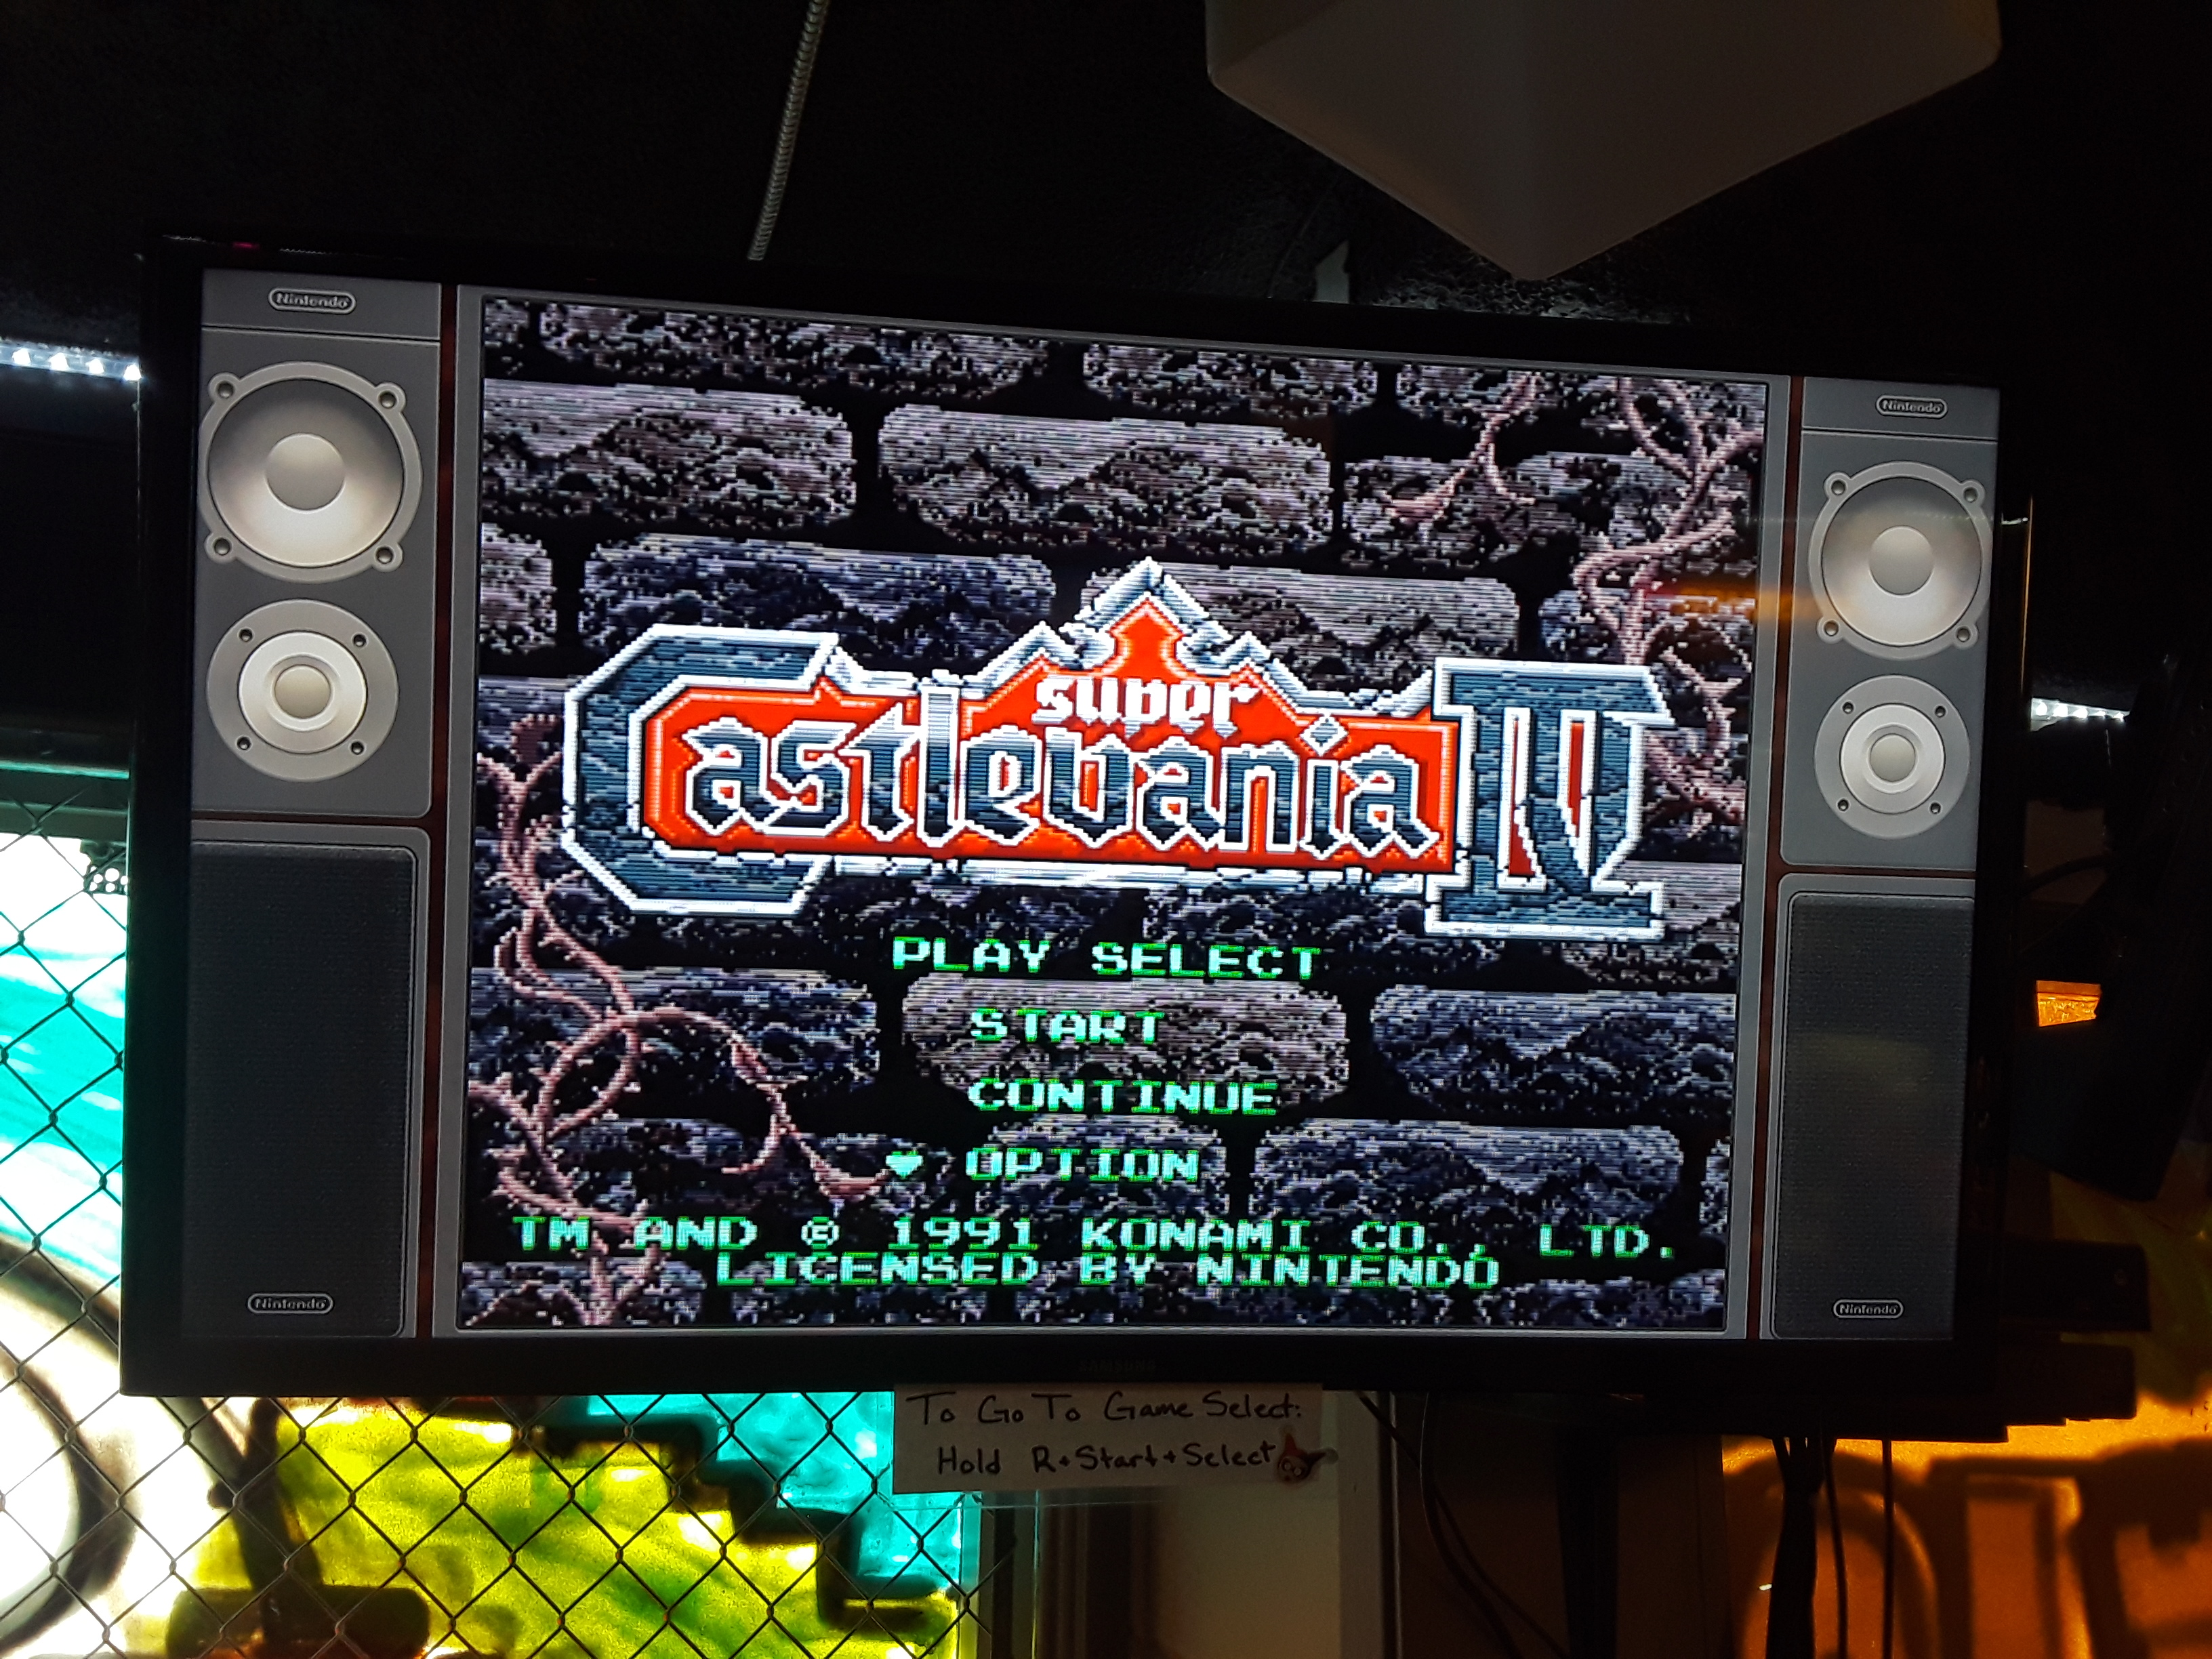 Super Castlevania IV 7,600 points